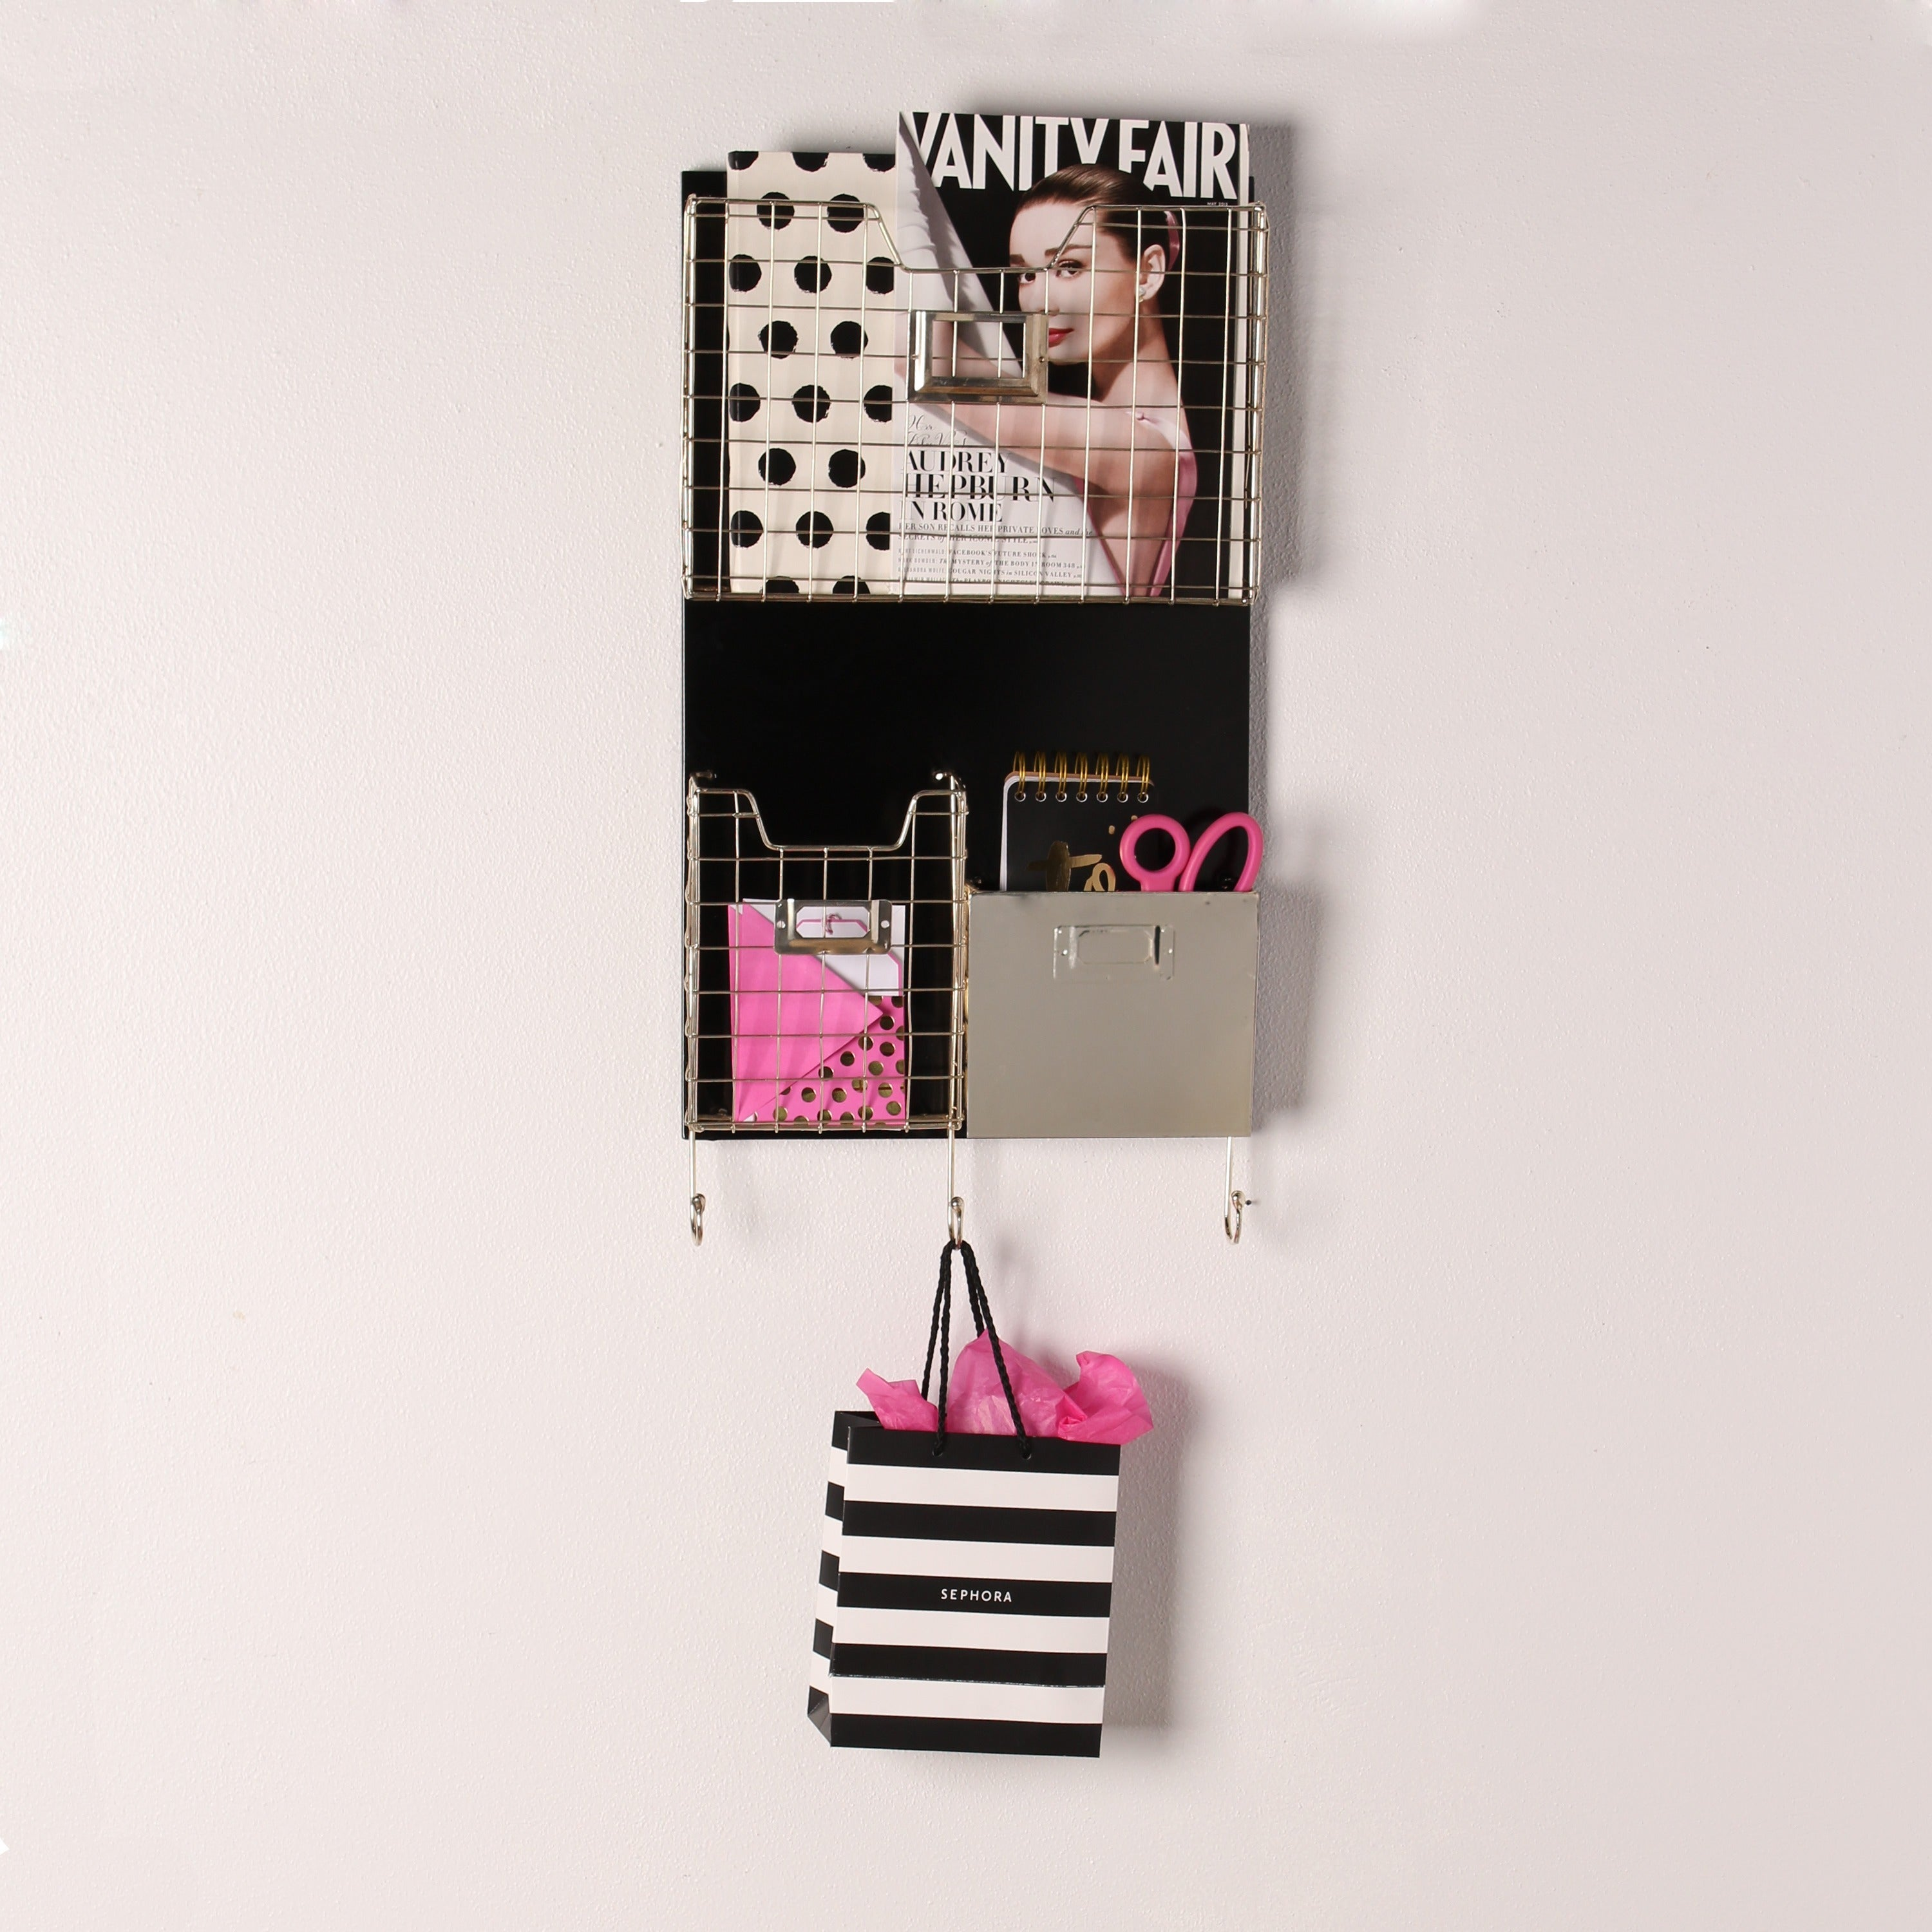 Nicholas Hanging Metal Wall Organizer with Baskets and Ho...